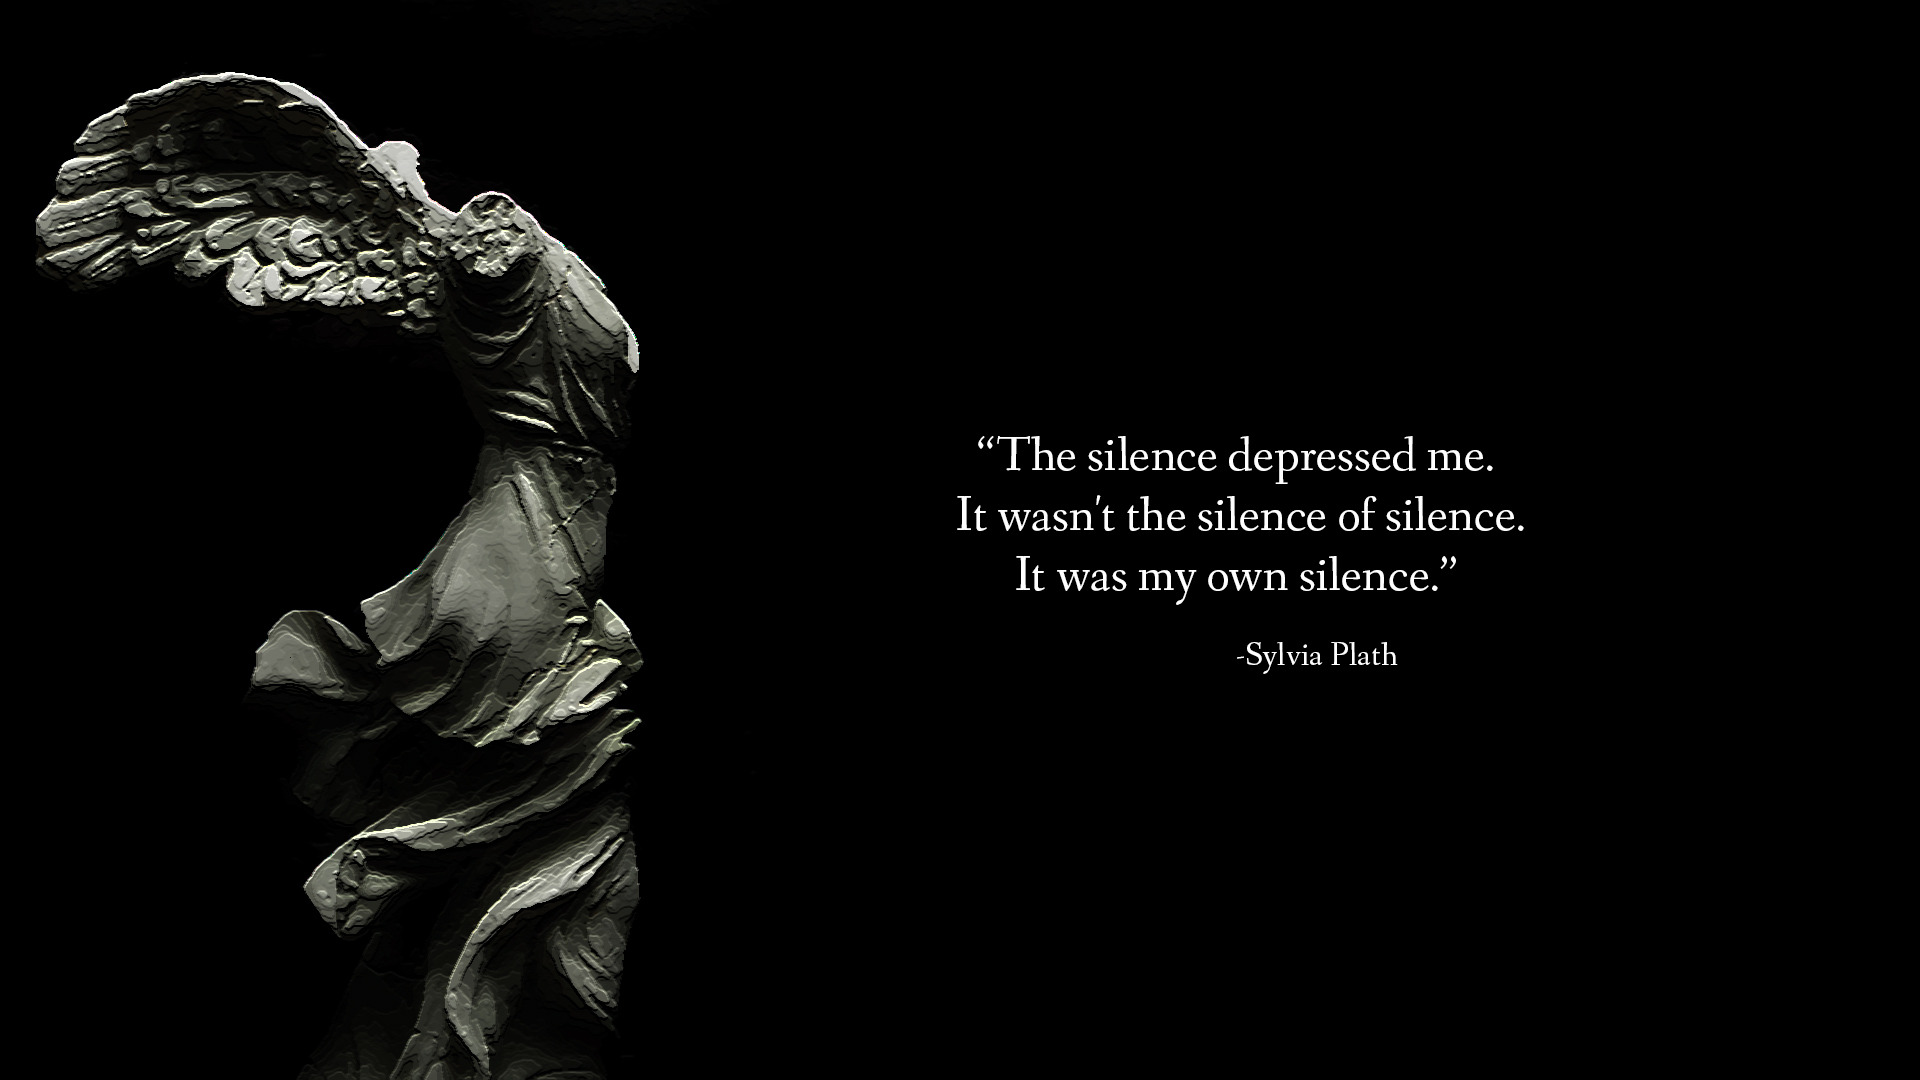 sylvia-plath-on-depression-quote-hd-wallpaper-1920x1080-9801